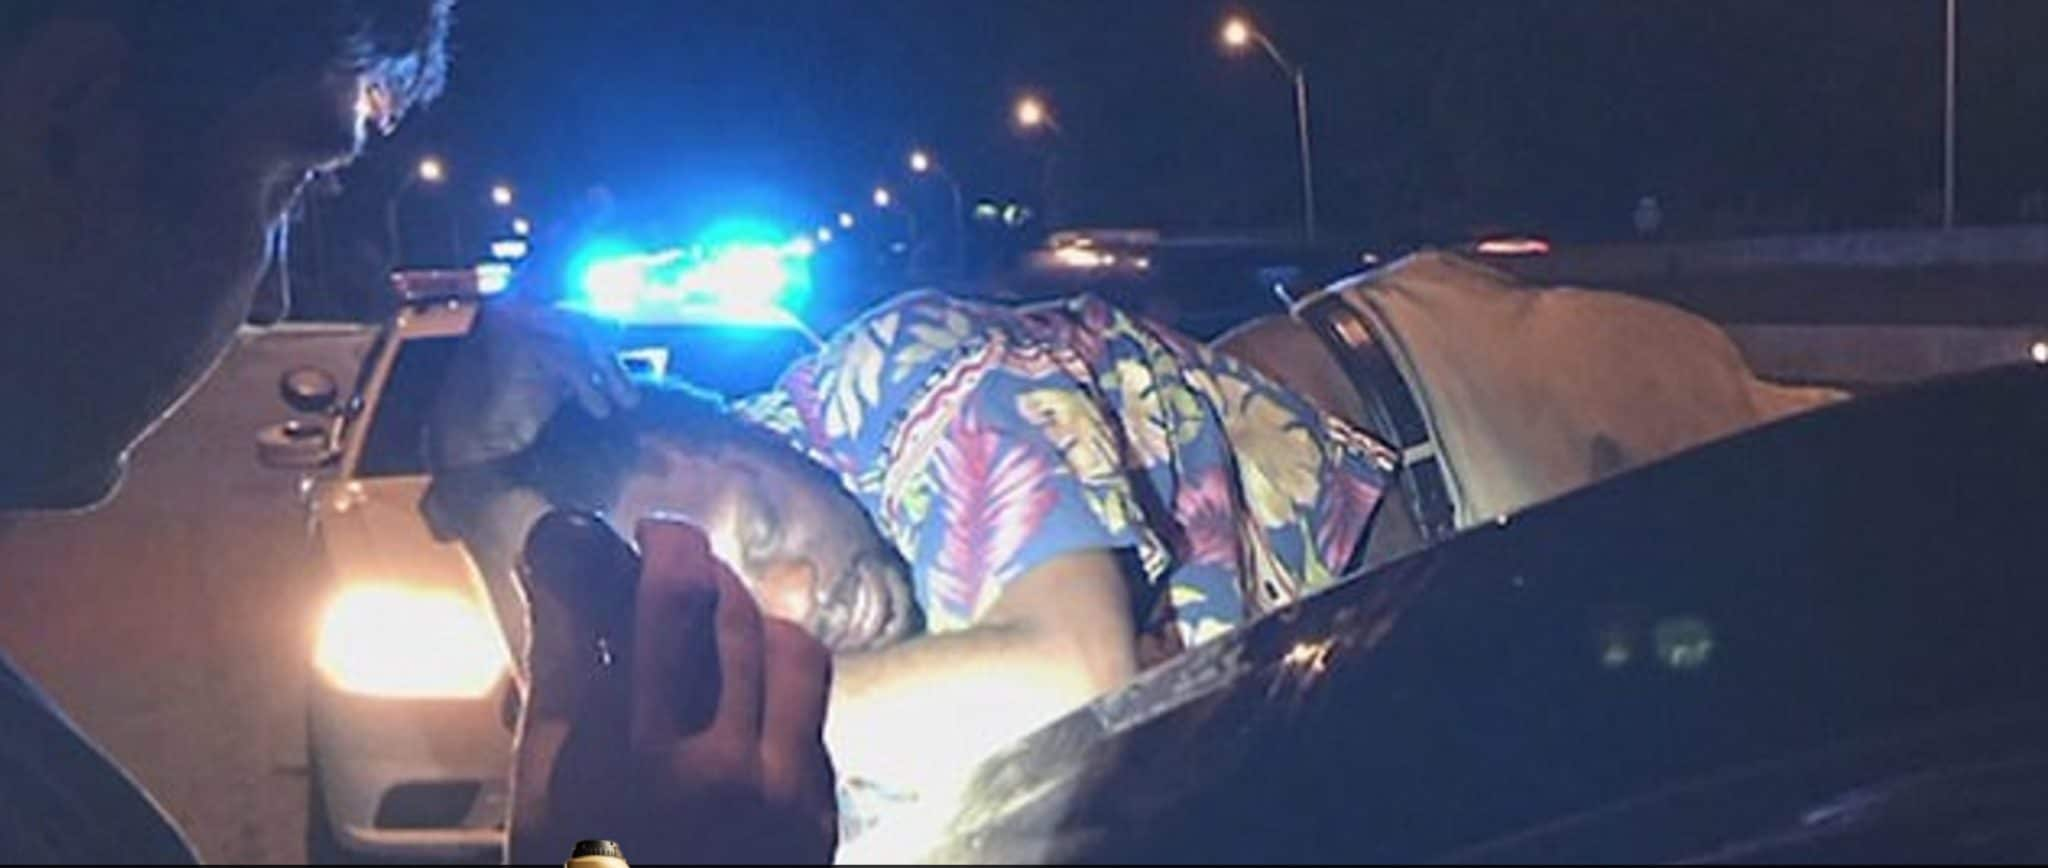 Couple drives for 14 miles with drunk man passed out on